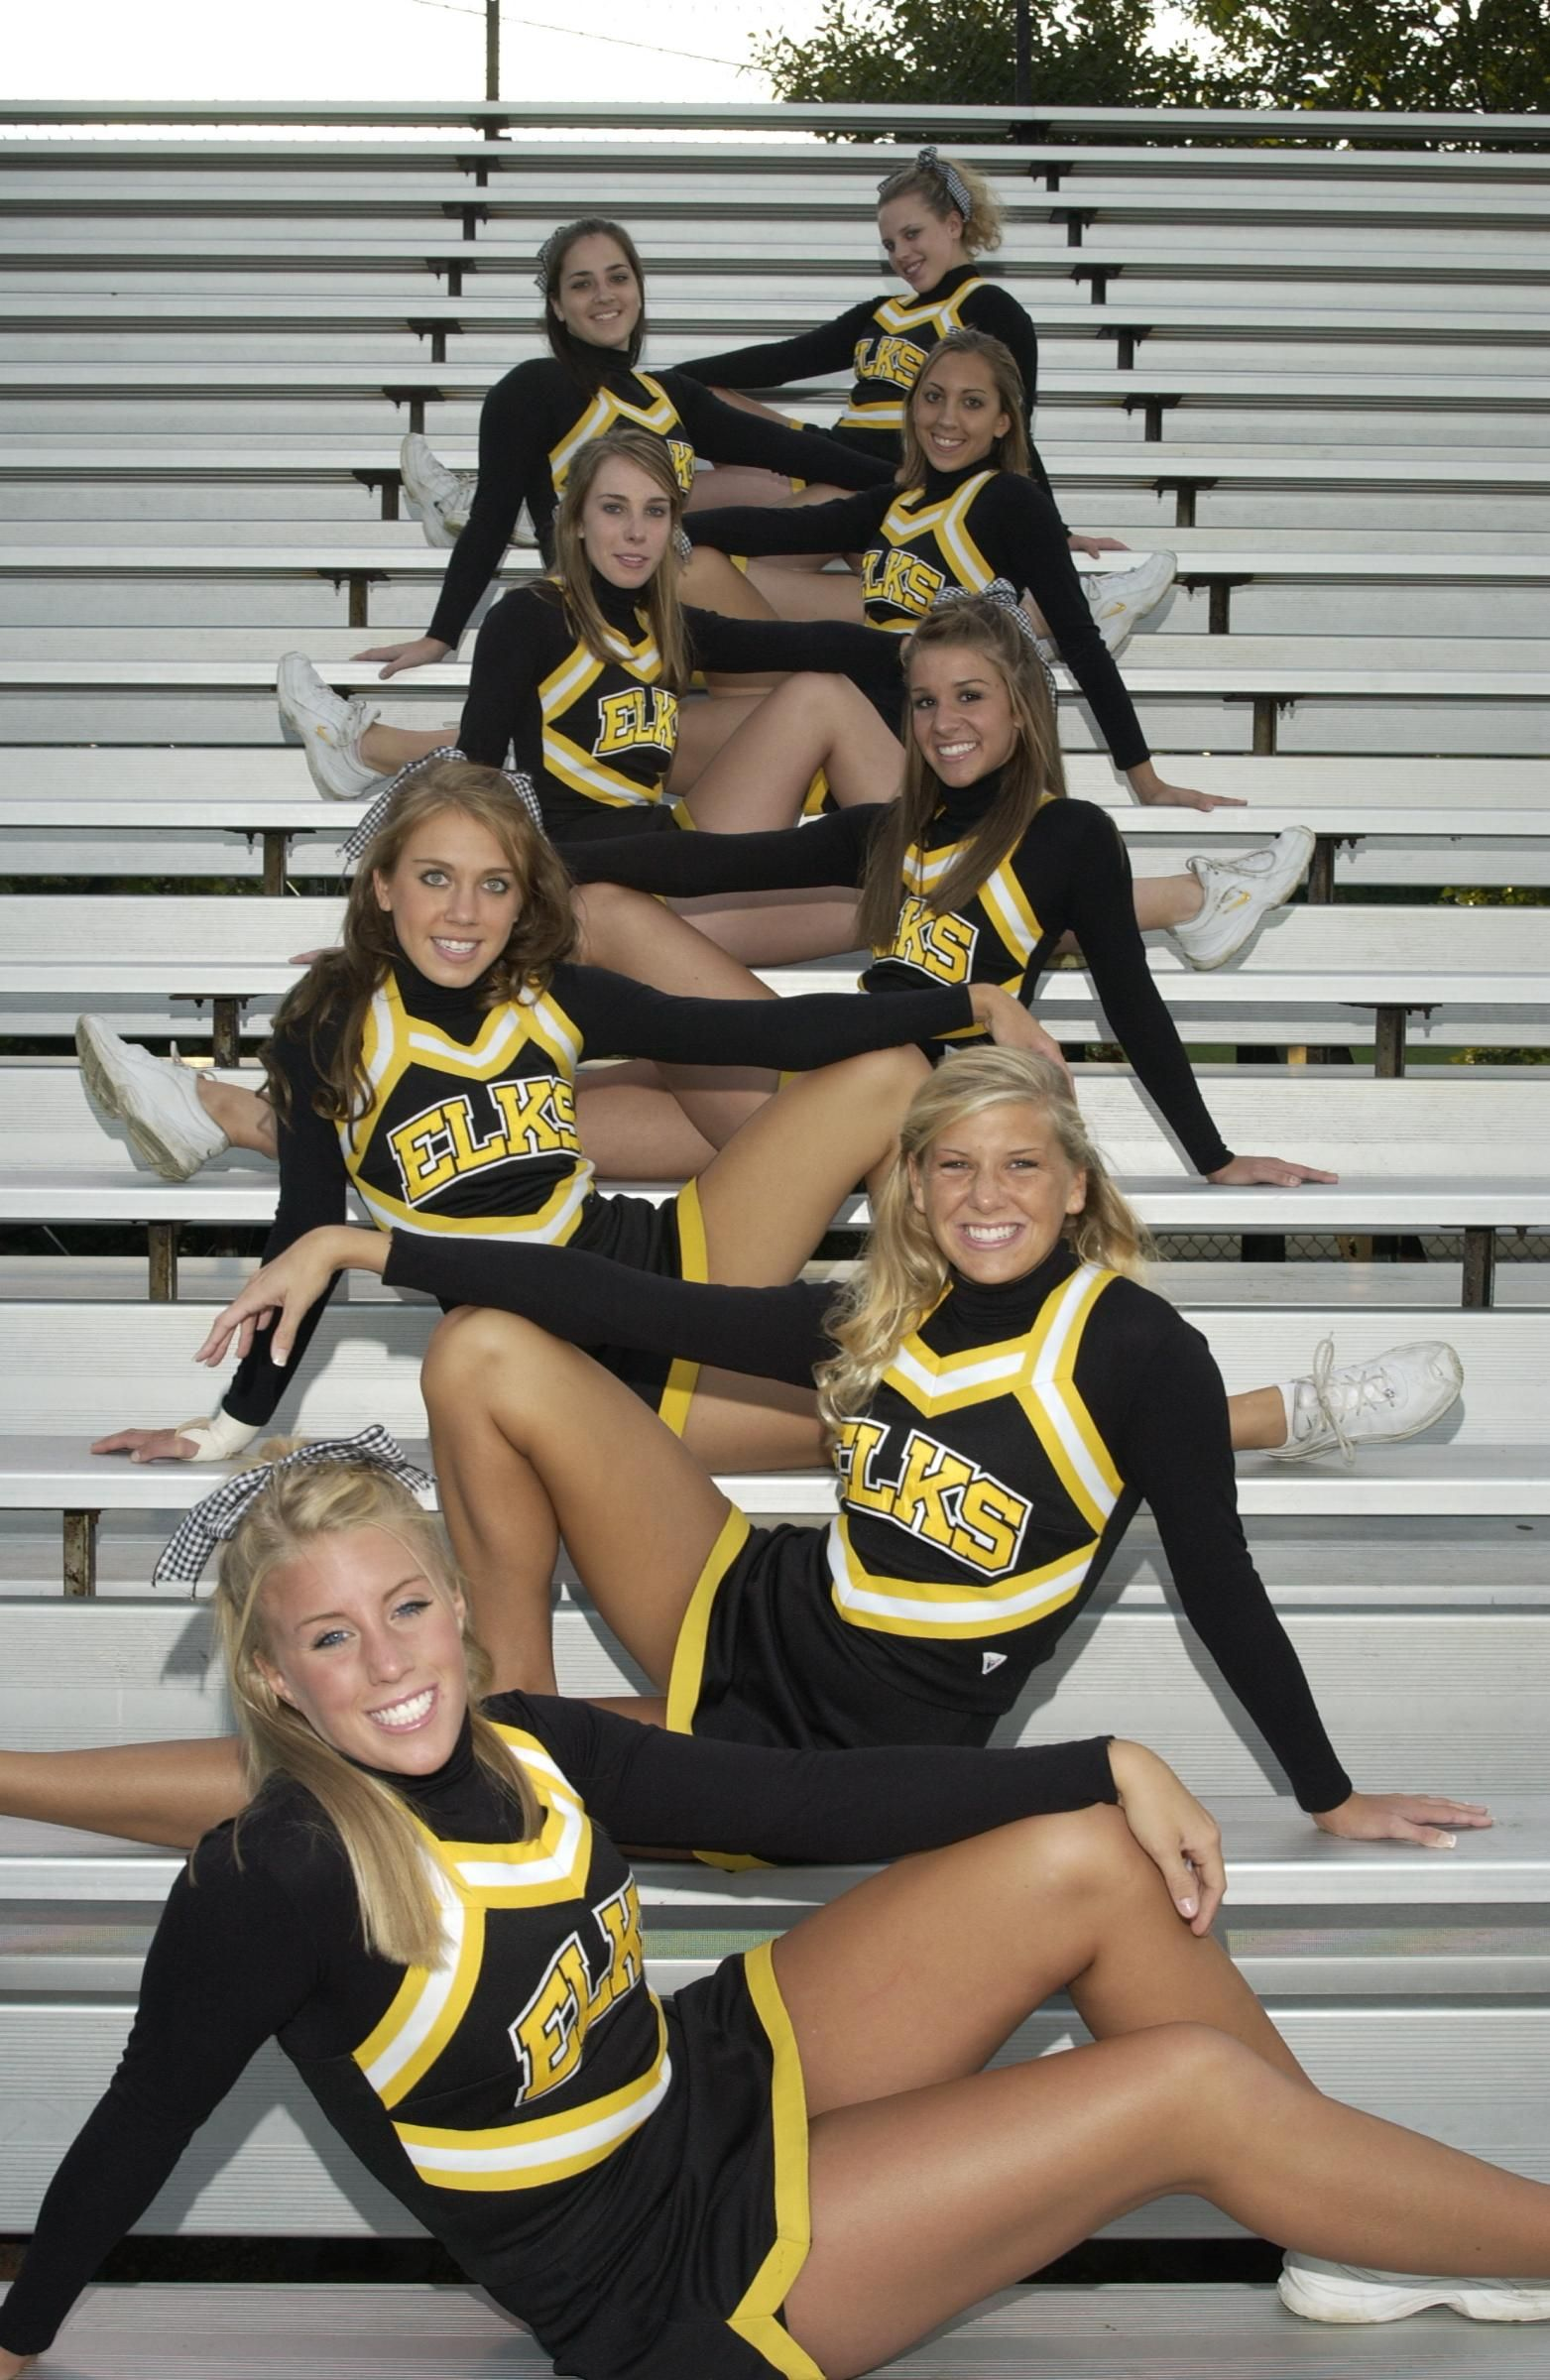 Poses For Cheer Pictures photo 26